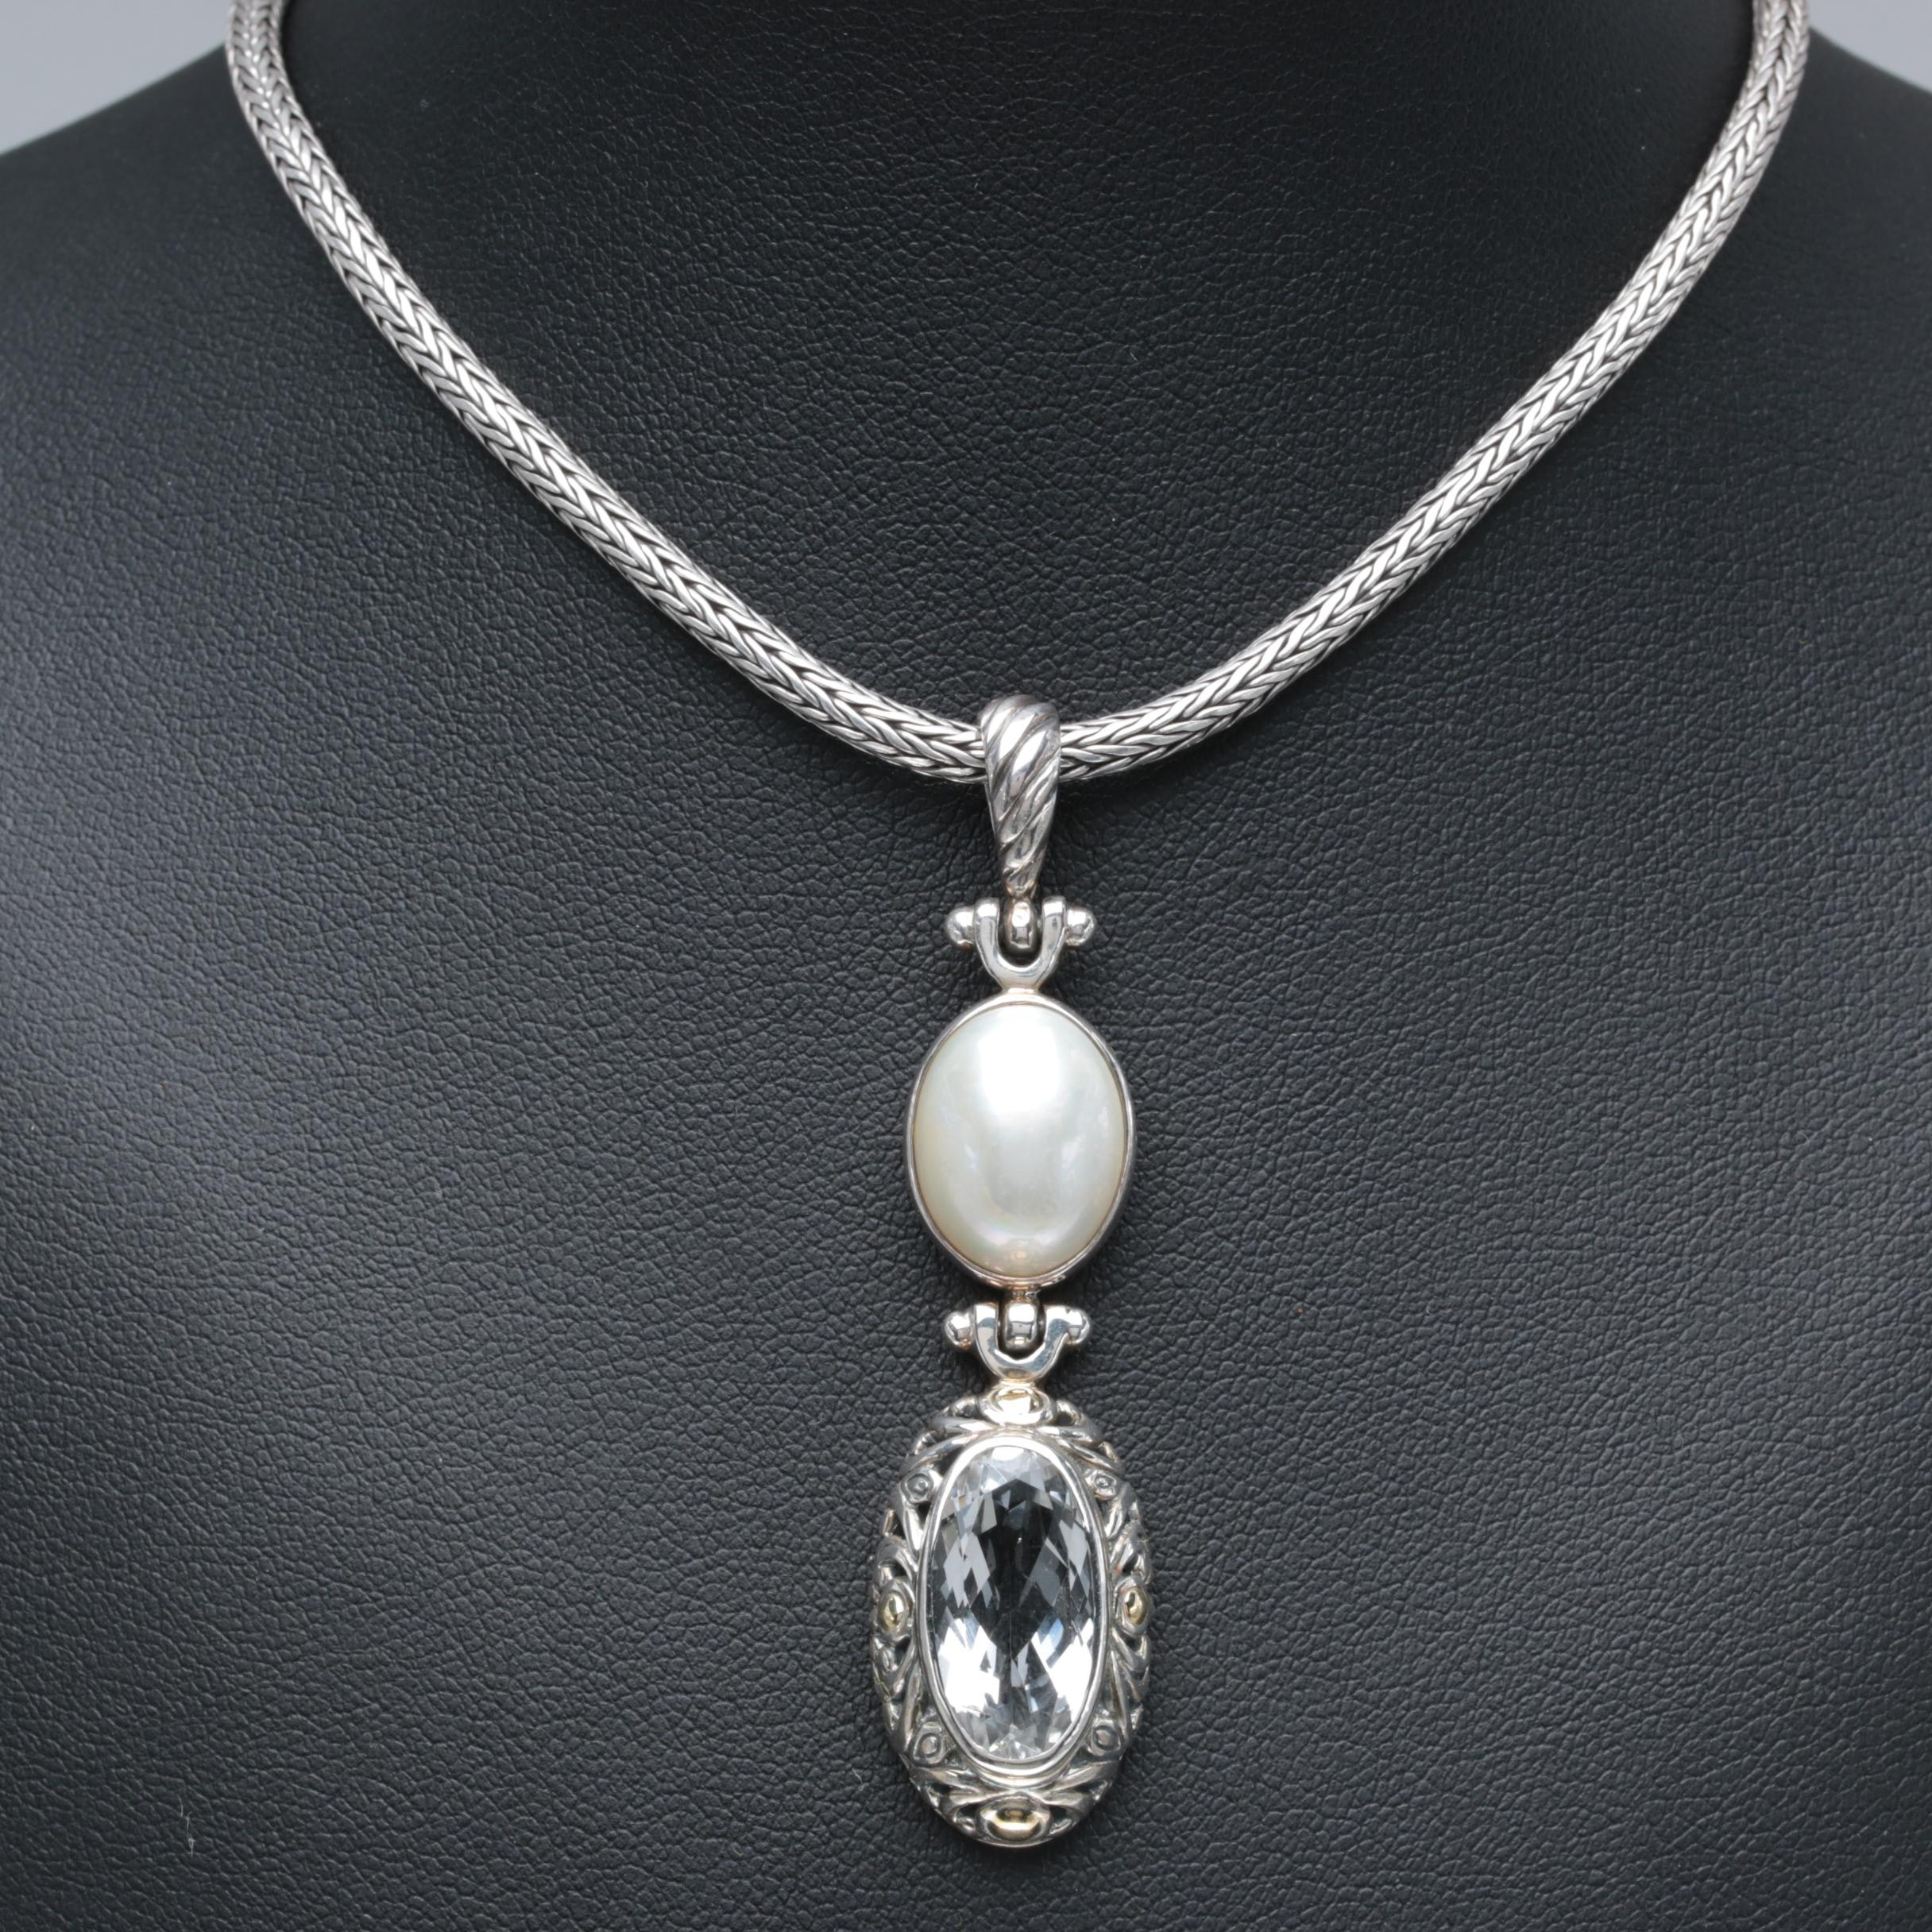 Robert Manse Sterling Topaz and Cultured Mabe Pearl Necklace with 18K Accents